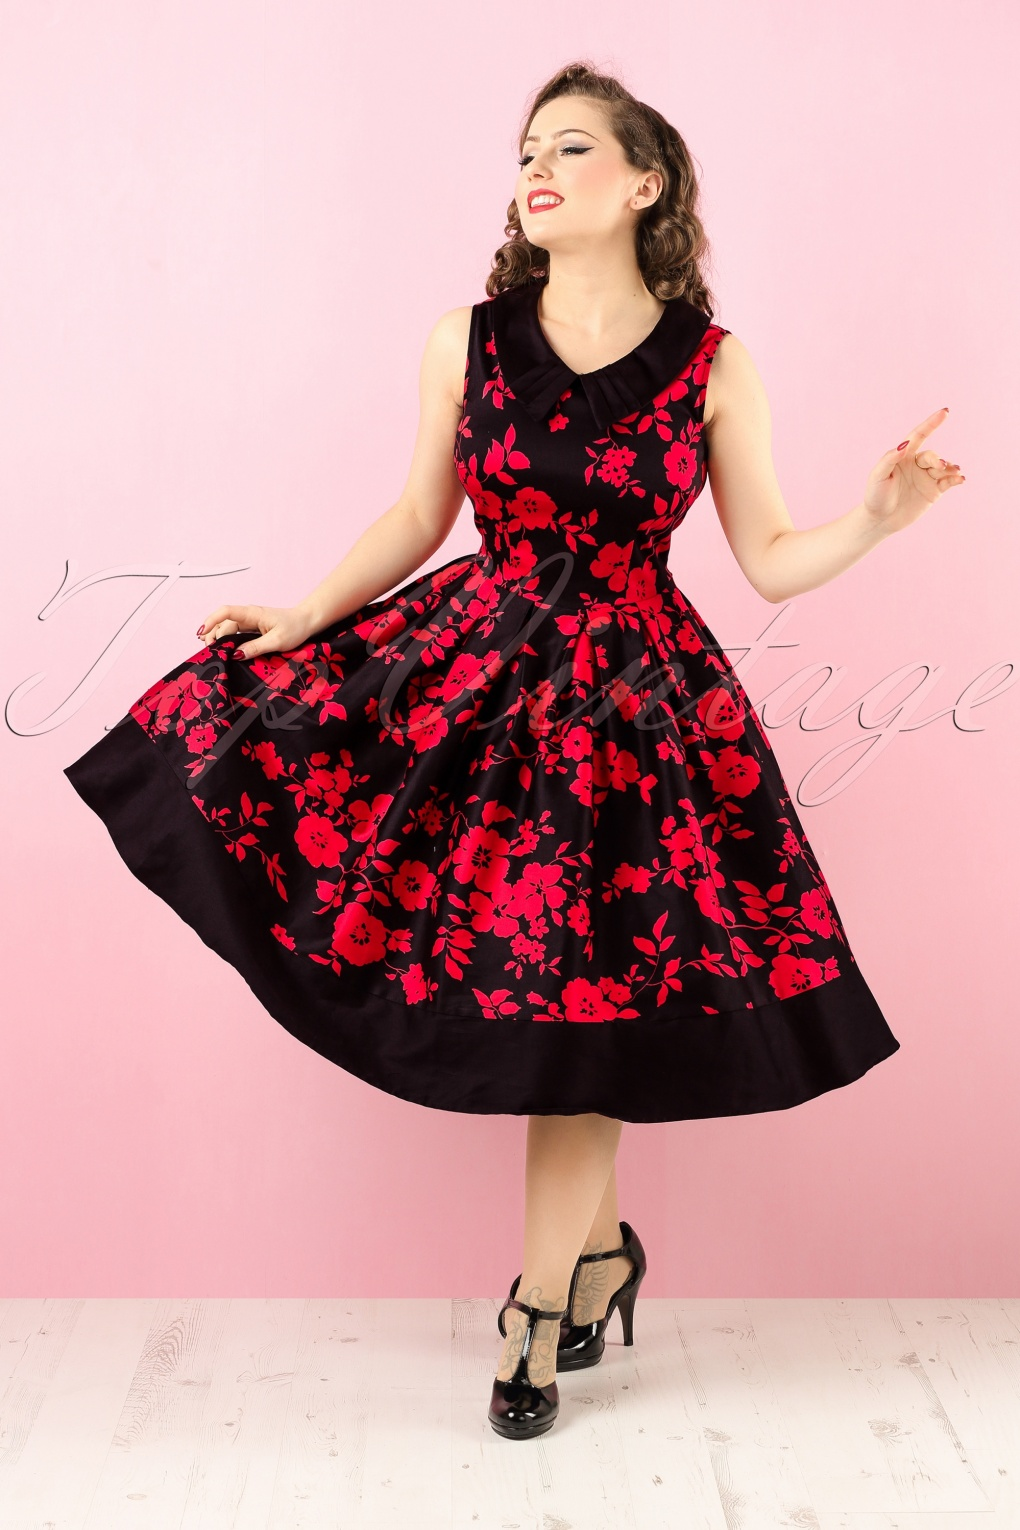 Red and Black Swing Dresses